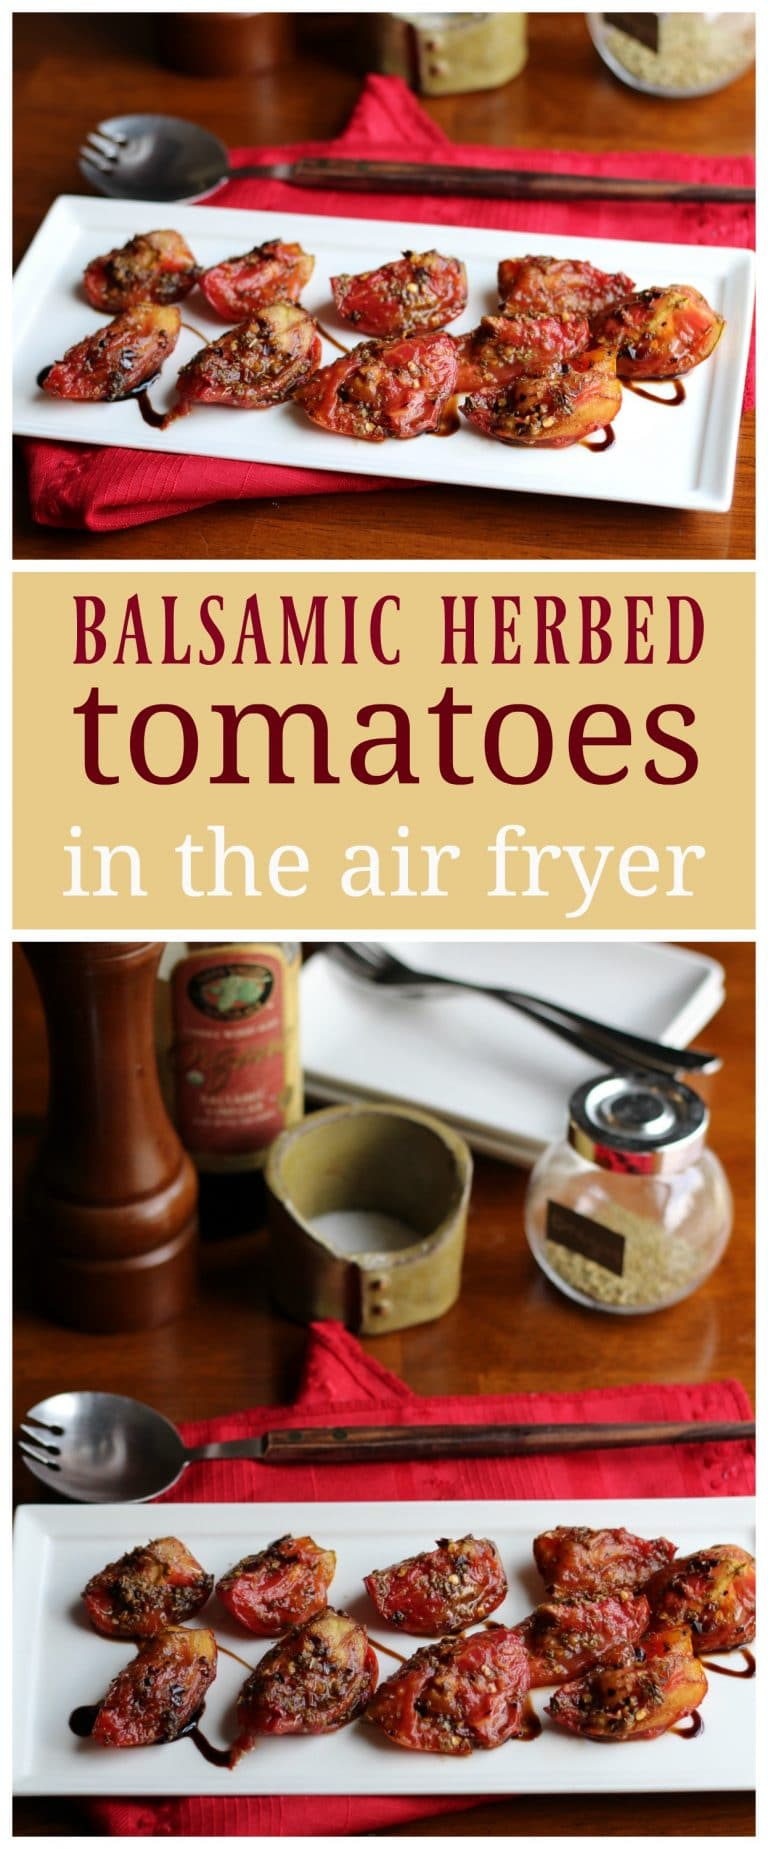 These balsamic tomatoes would be a wonderful summertime side dish, as well as a great addition to pasta. Get the recipe & hear about The Vegan Air Fryer by JL Fields.